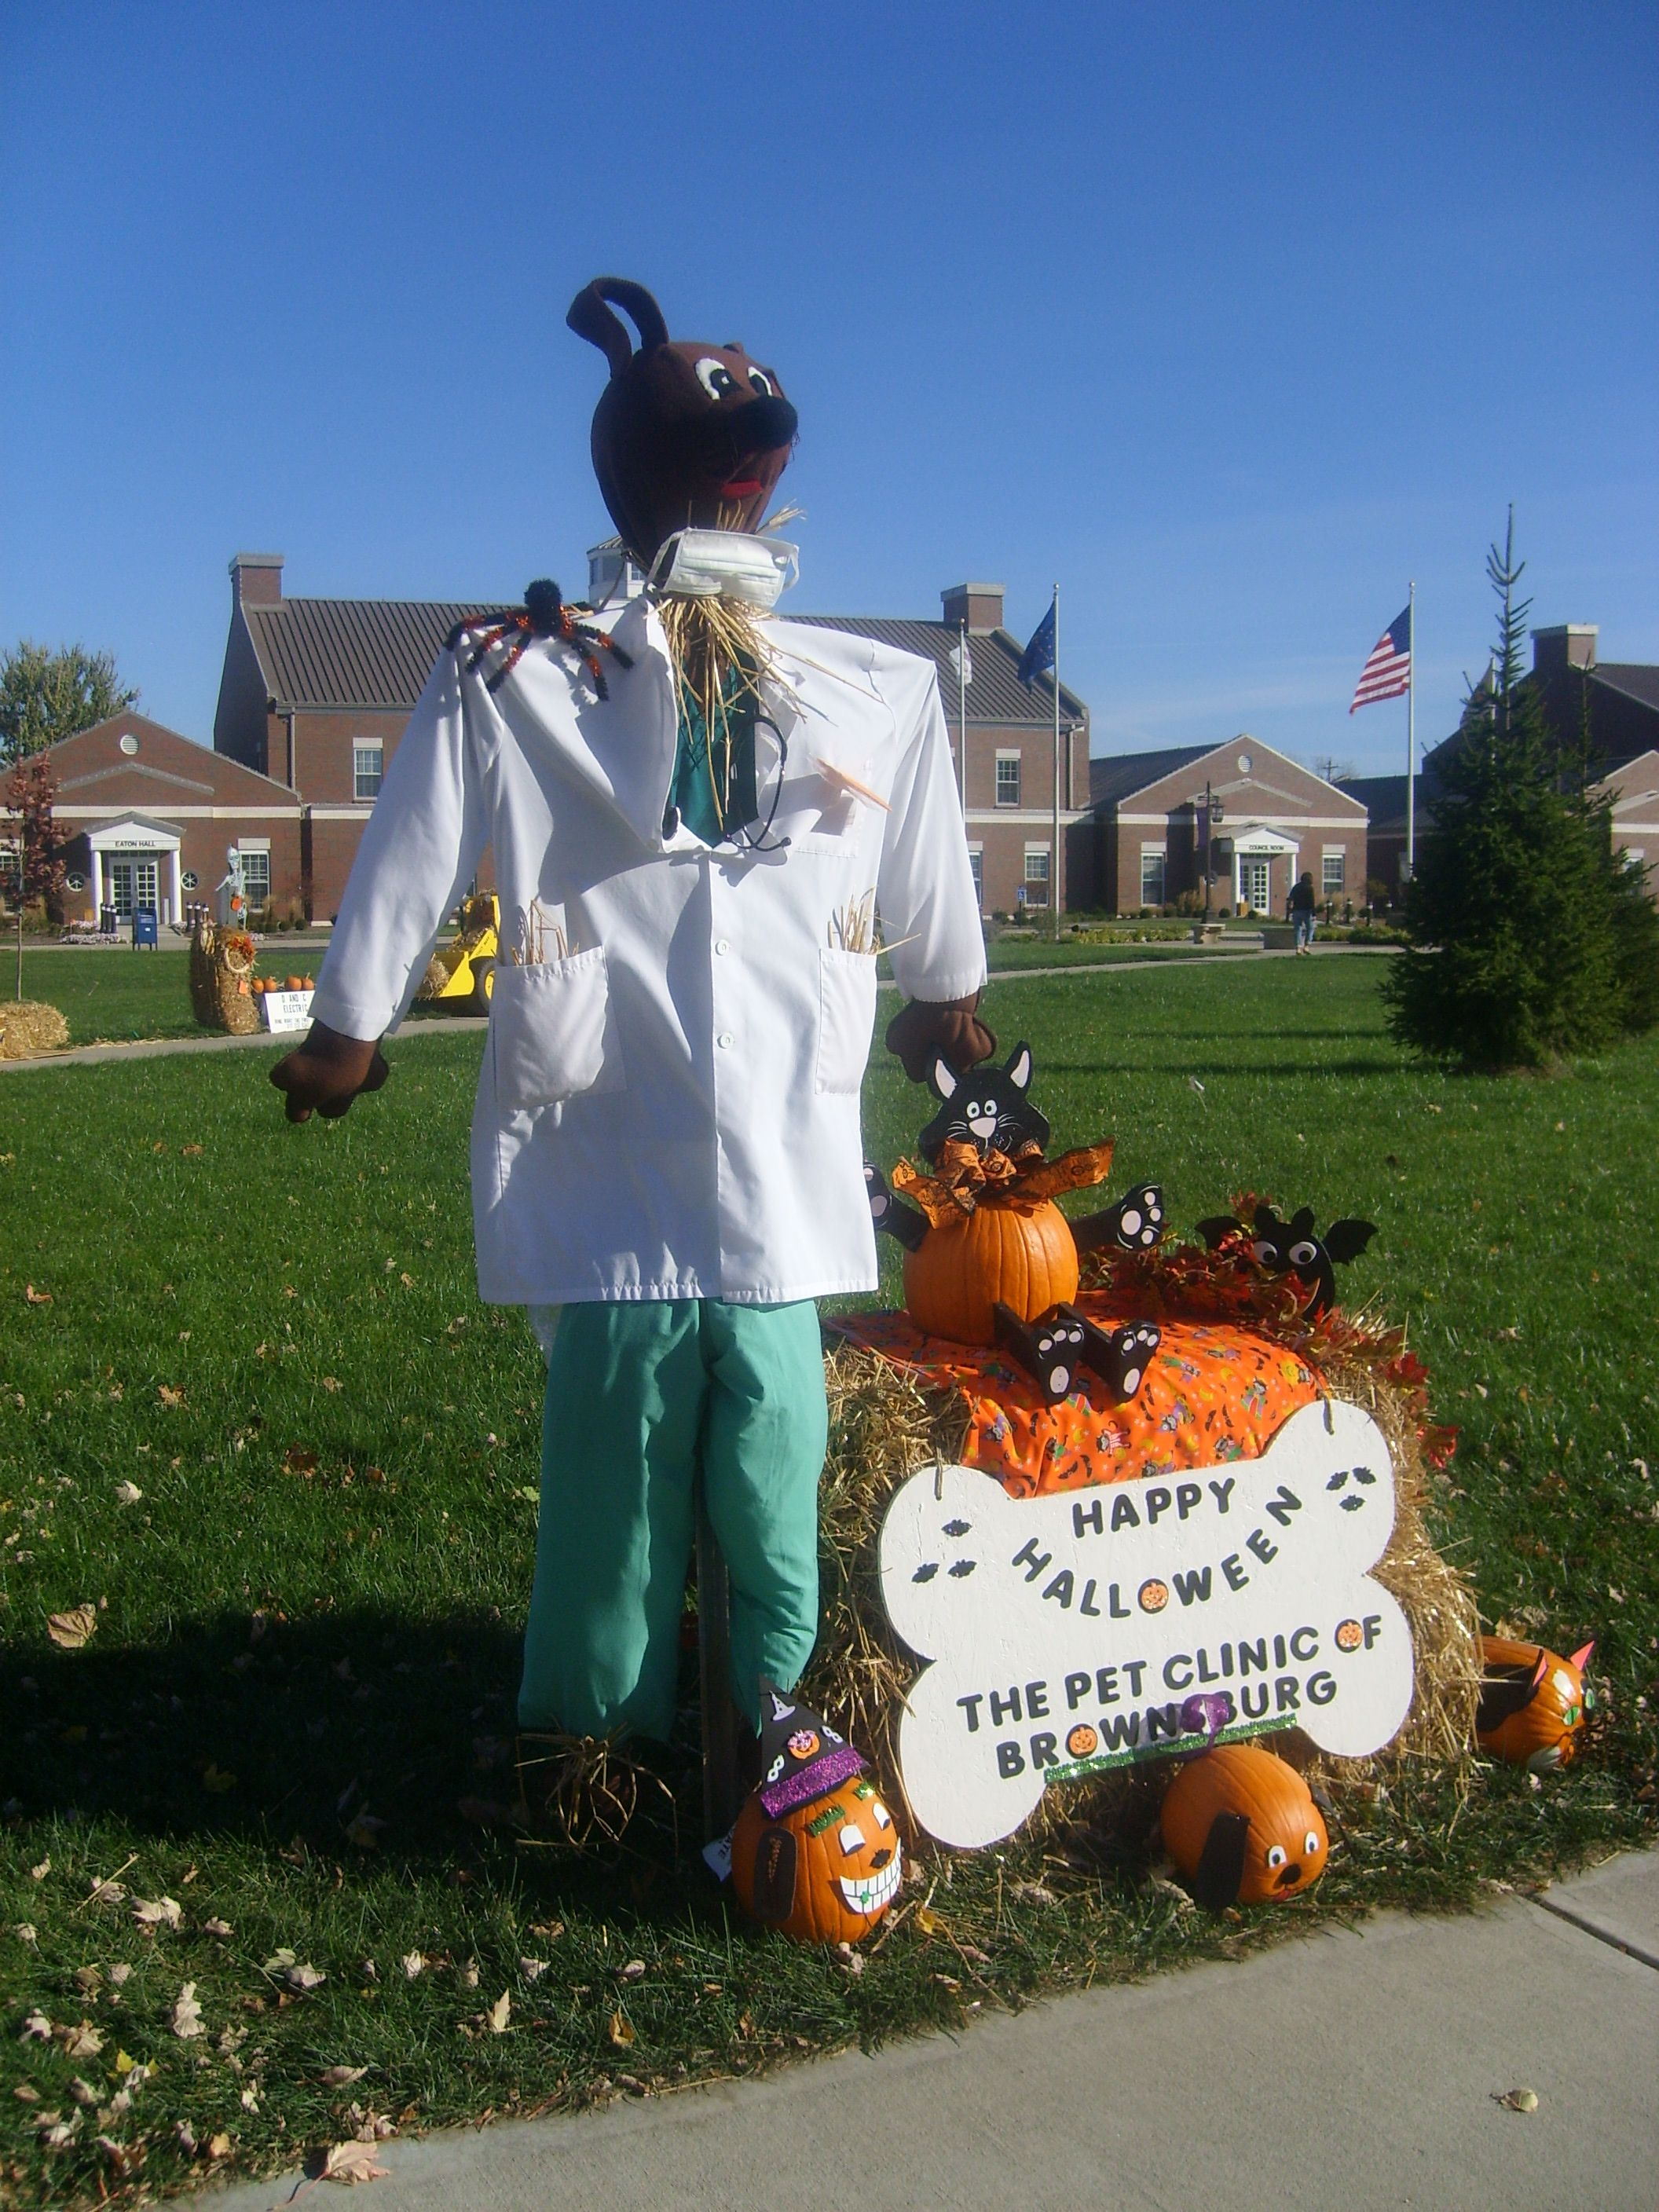 Happy halloween from the pet clinic of brownsburg